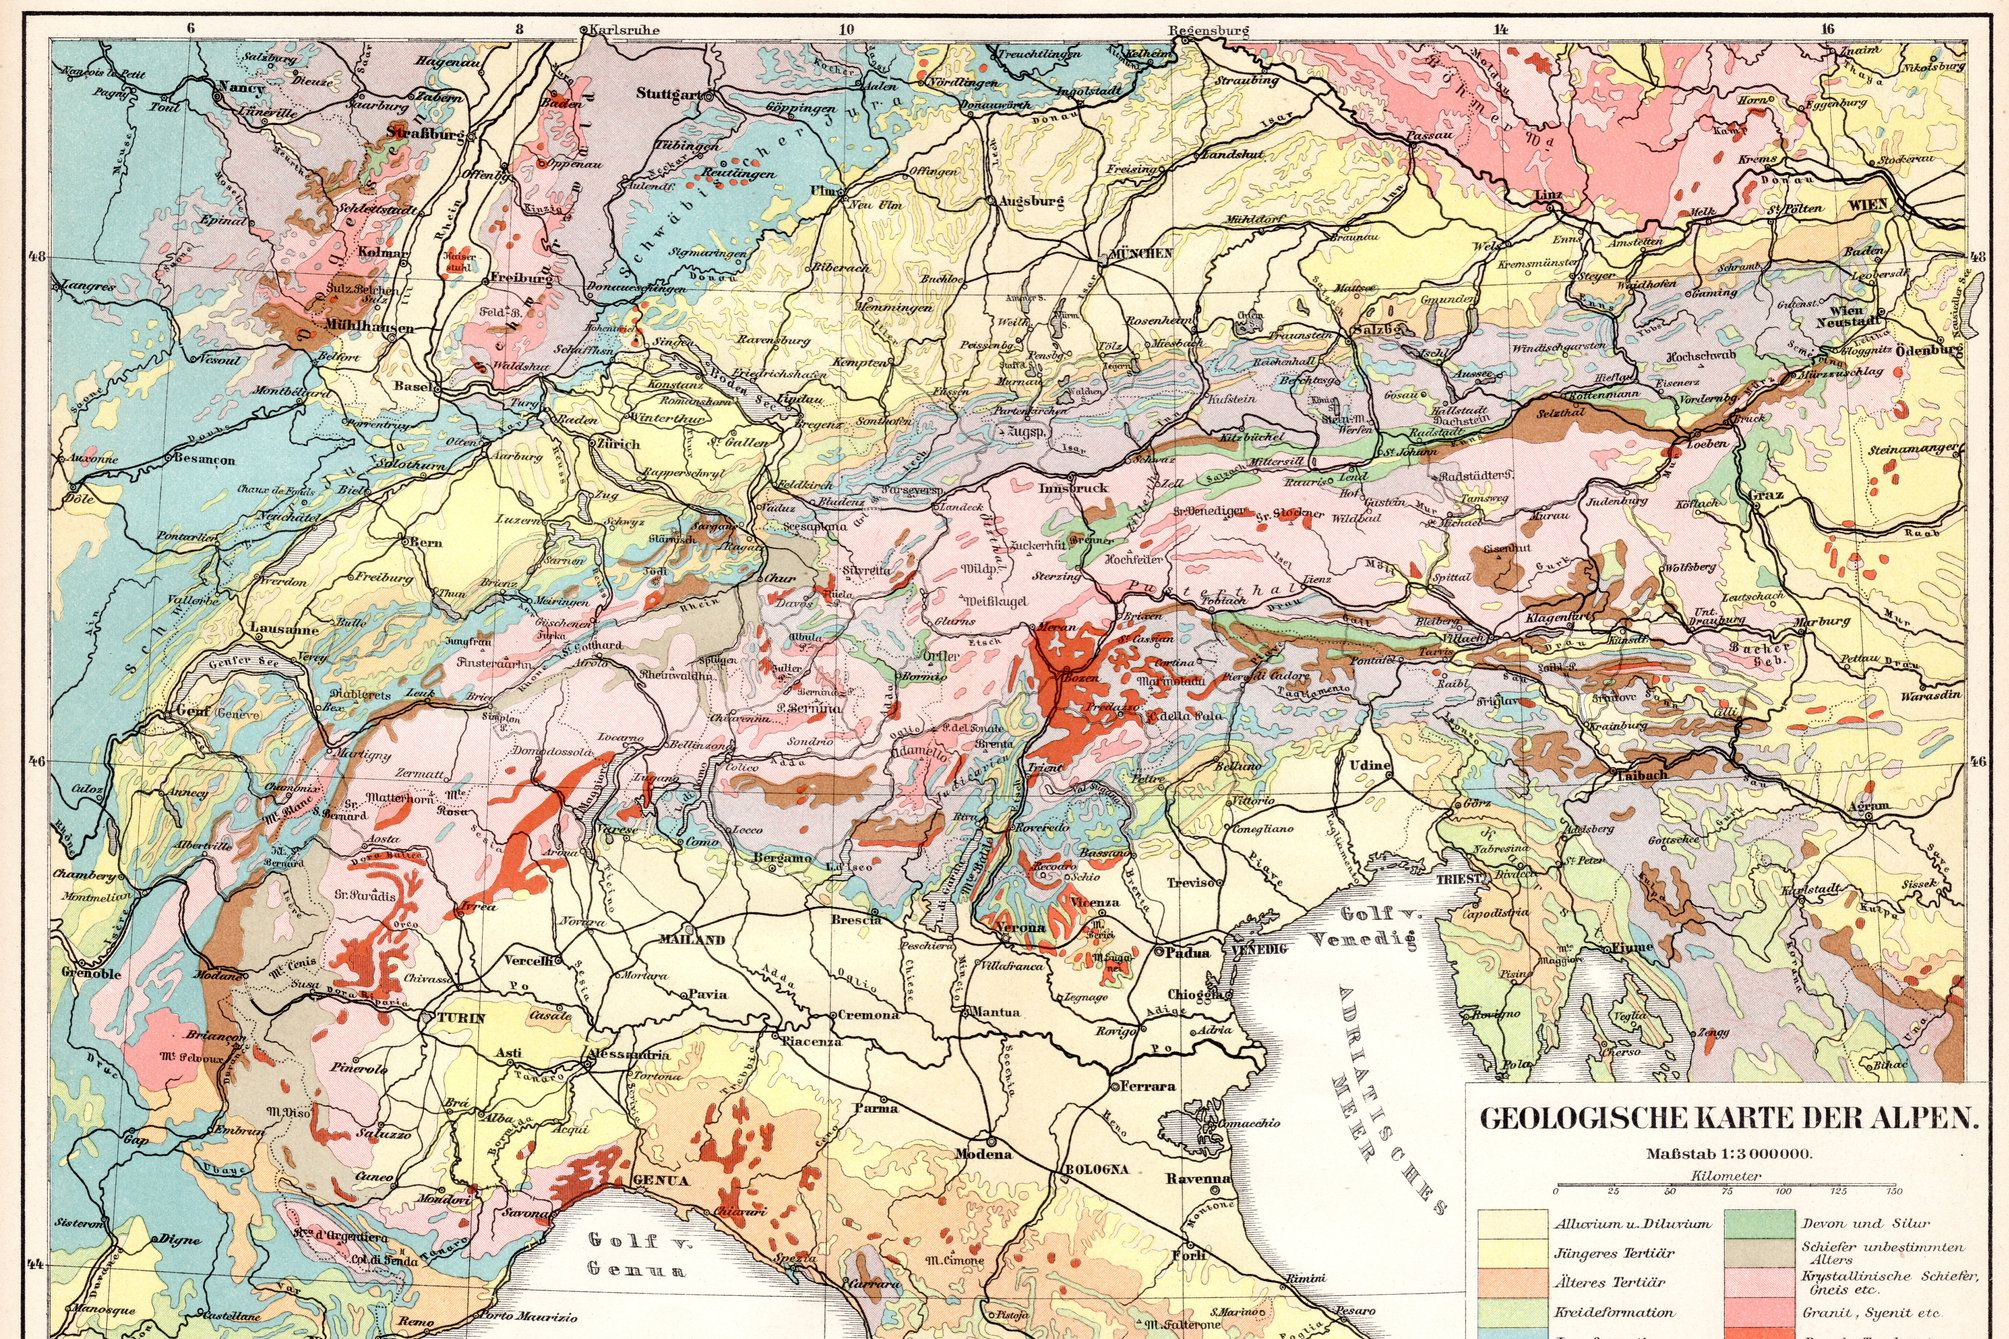 Geologic map of the Alps